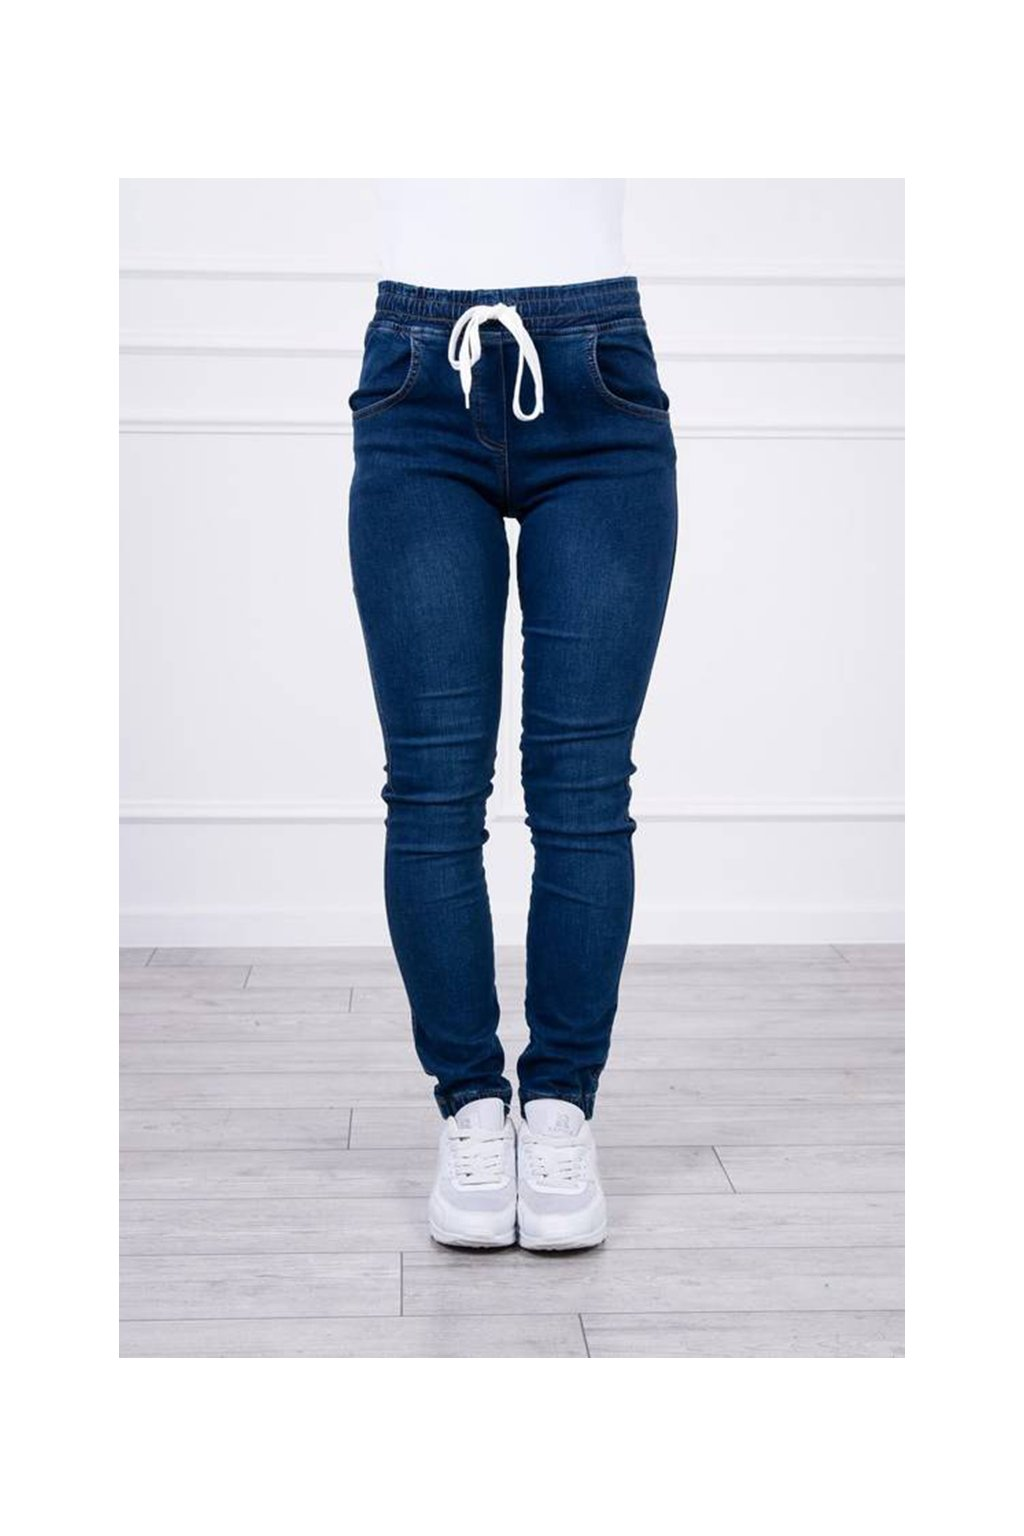 eng pm Denim trousers with a drawstring dark jenas 19711 3